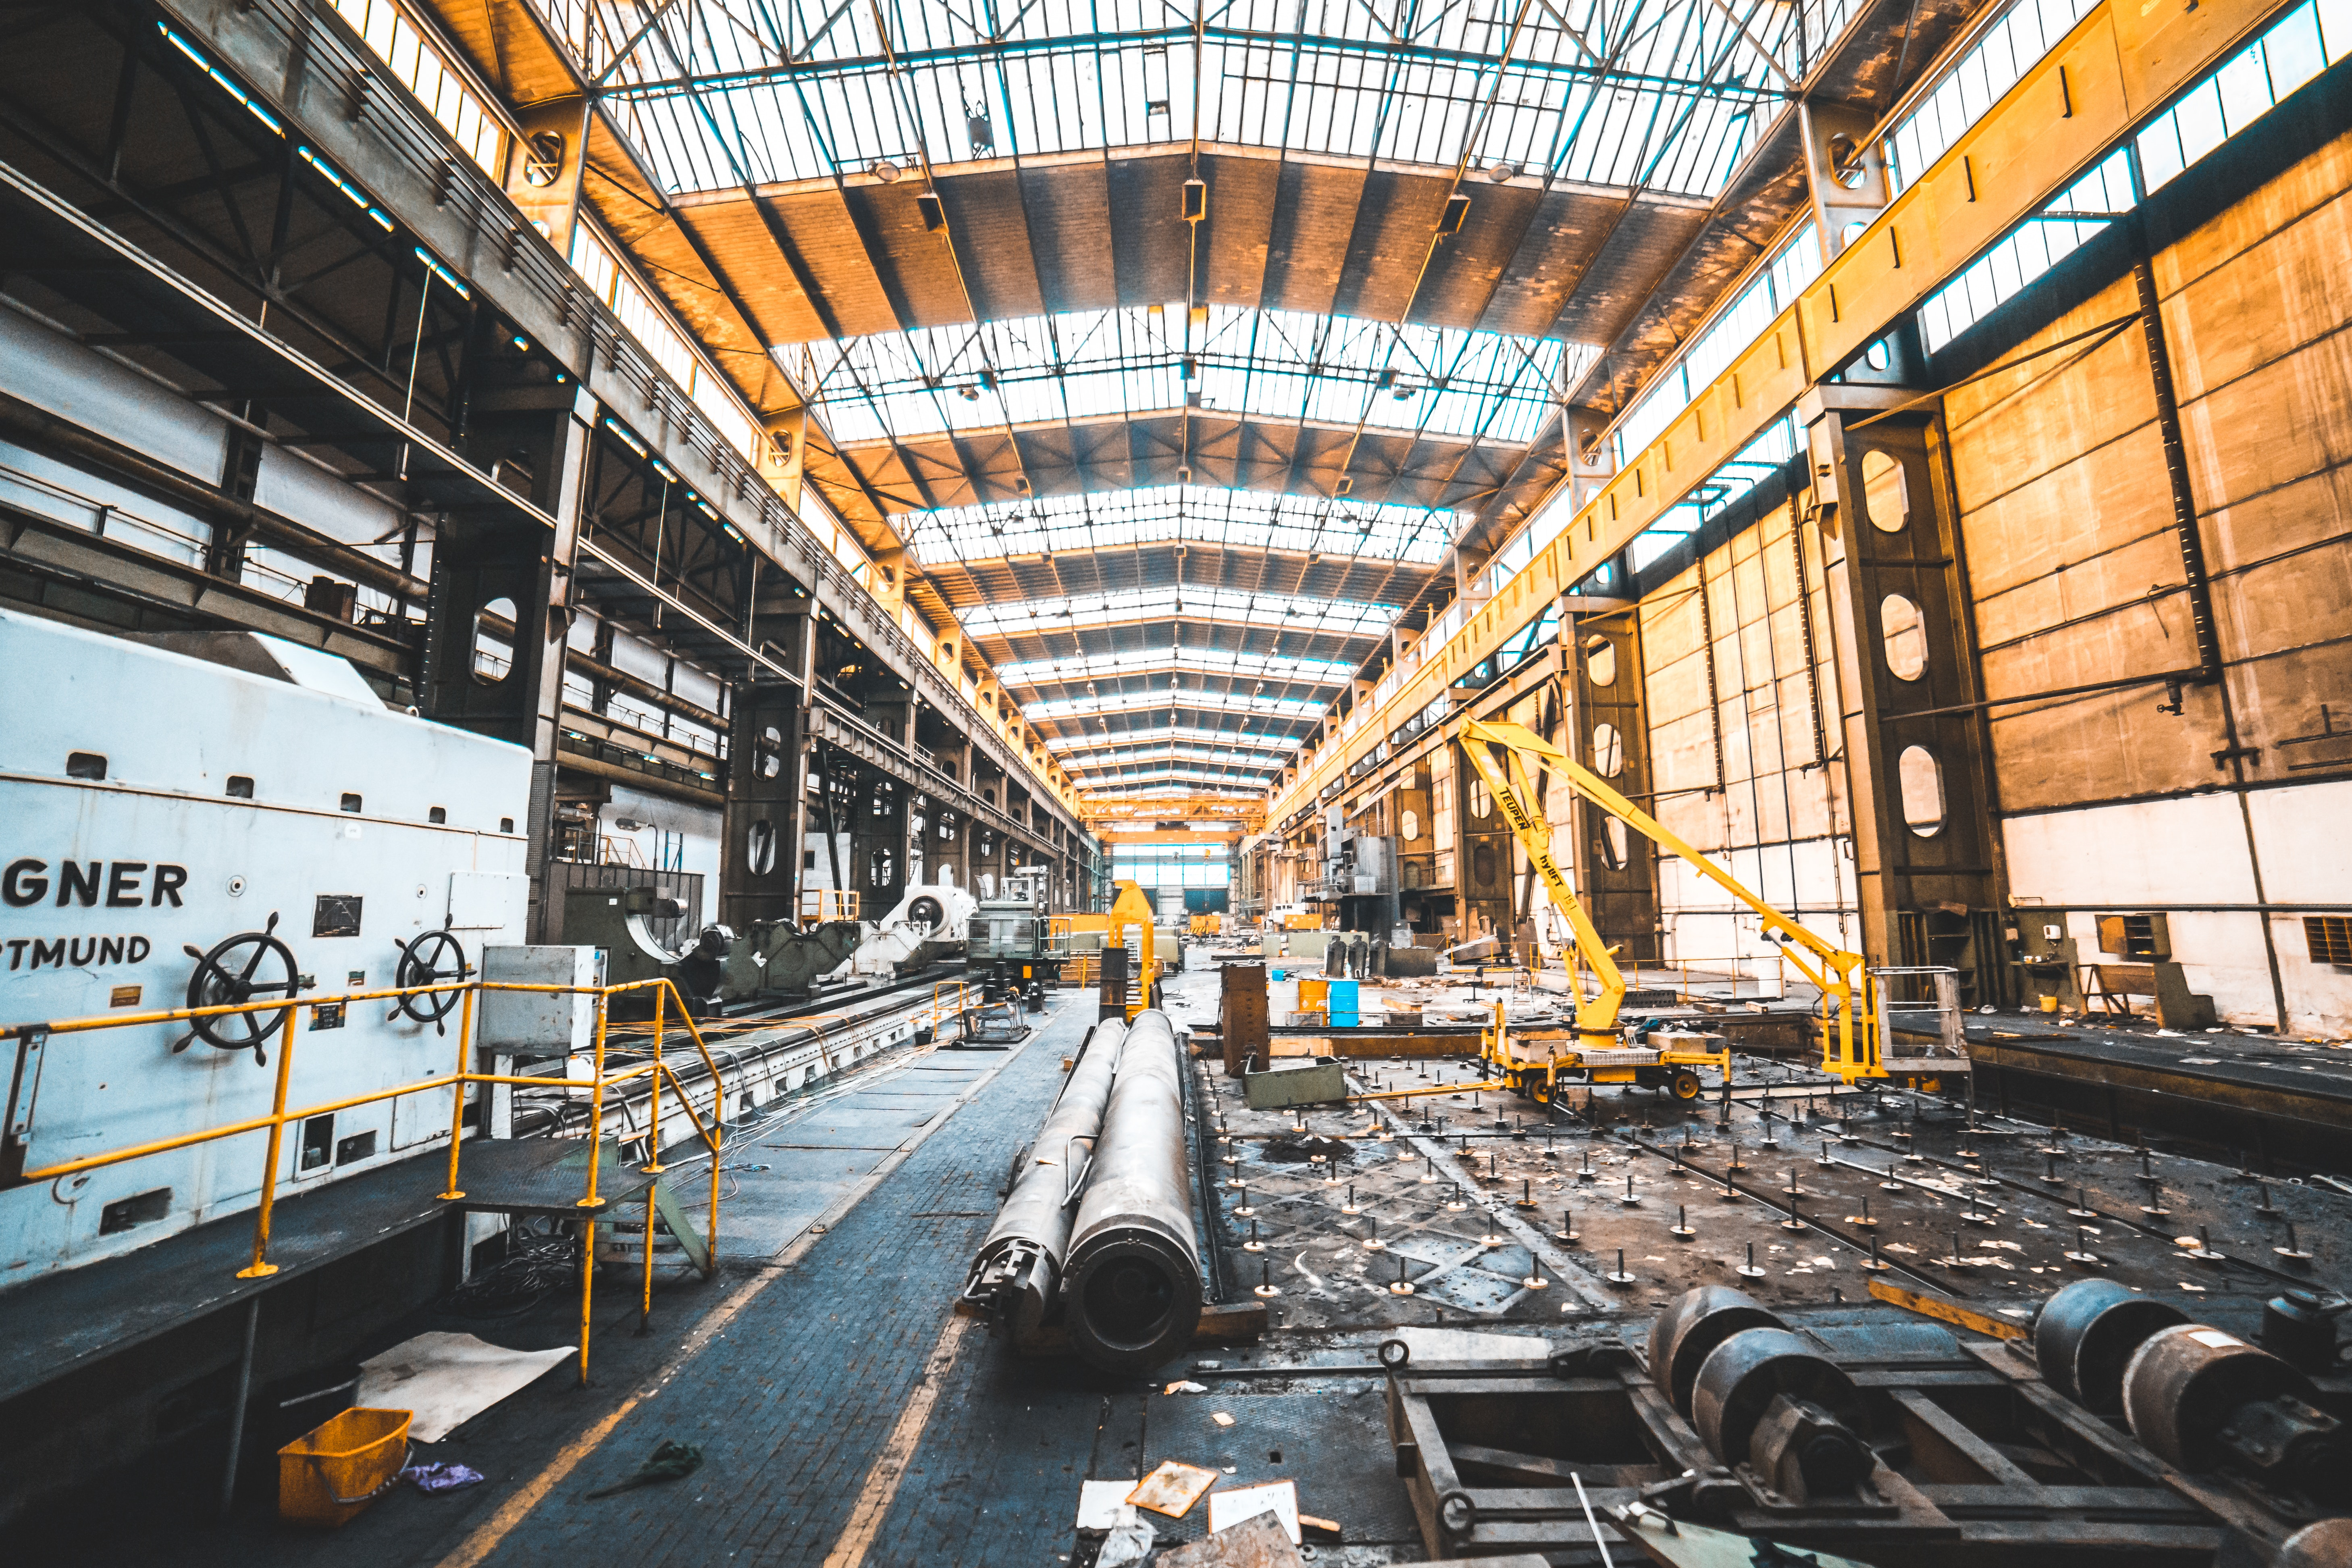 Key data security issues in industrial IoT (IIoT) systems